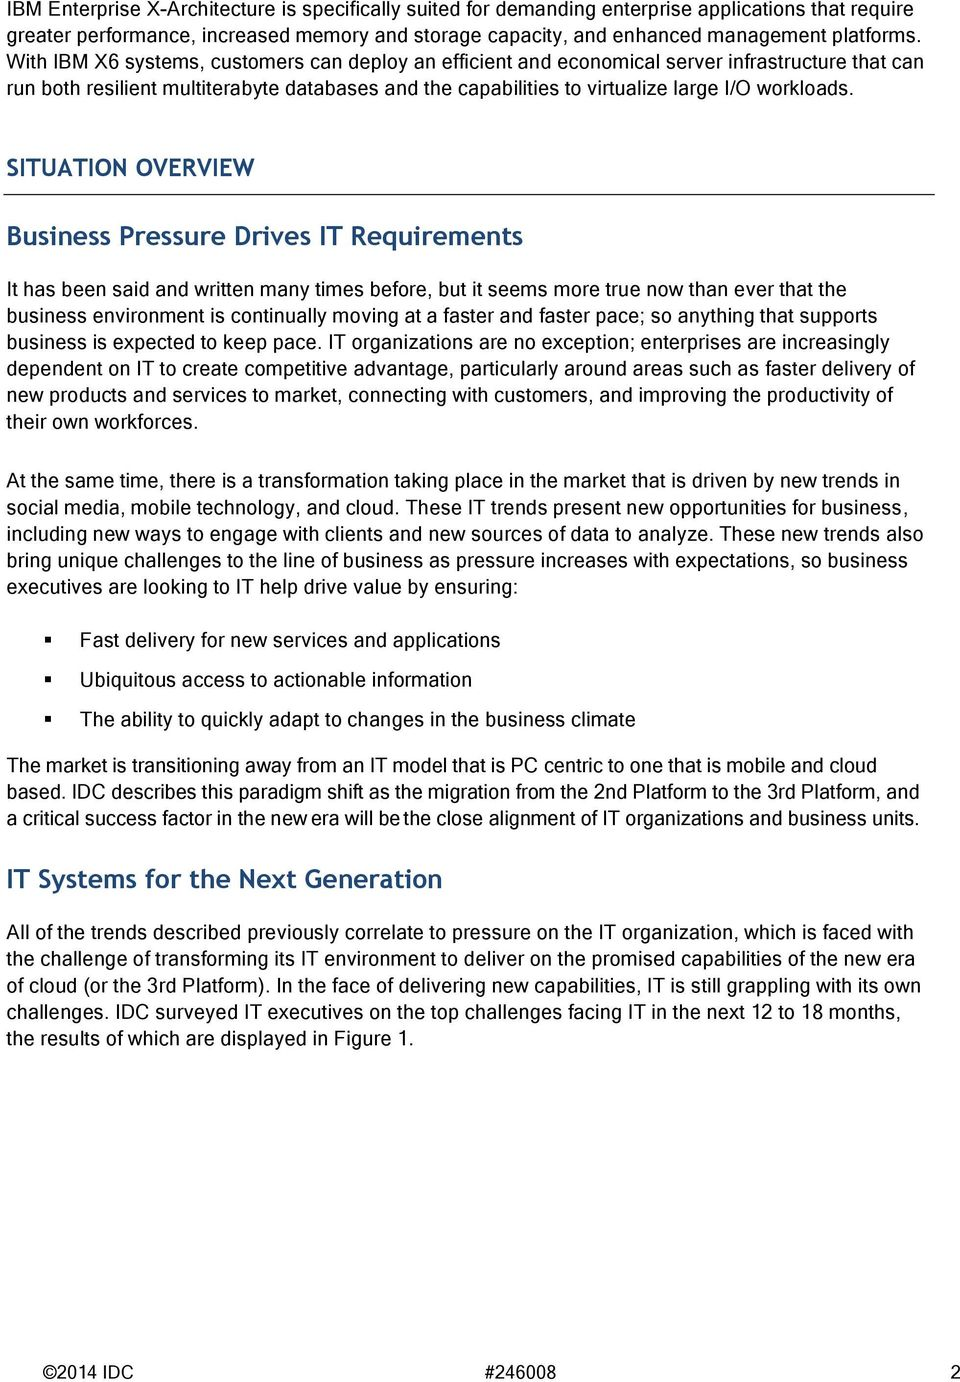 SITUATION OVERVIEW Business Pressure Drives IT Requirements It has been said and written many times before, but it seems more true now than ever that the business environment is continually moving at